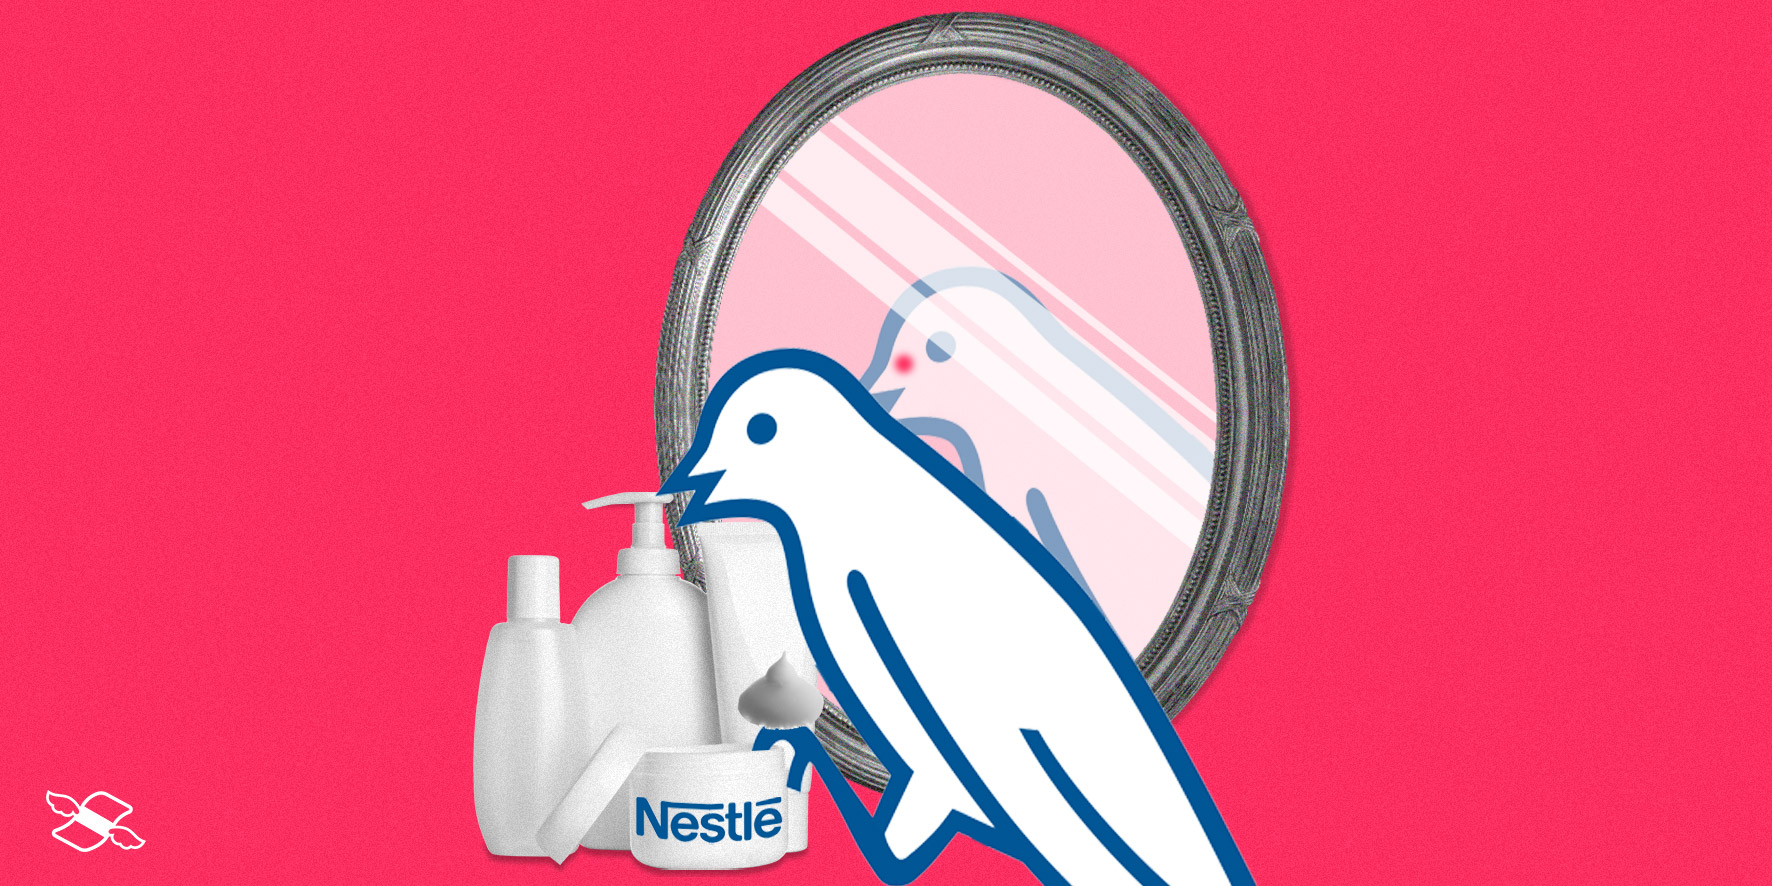 Nestlé looks to sell skincare